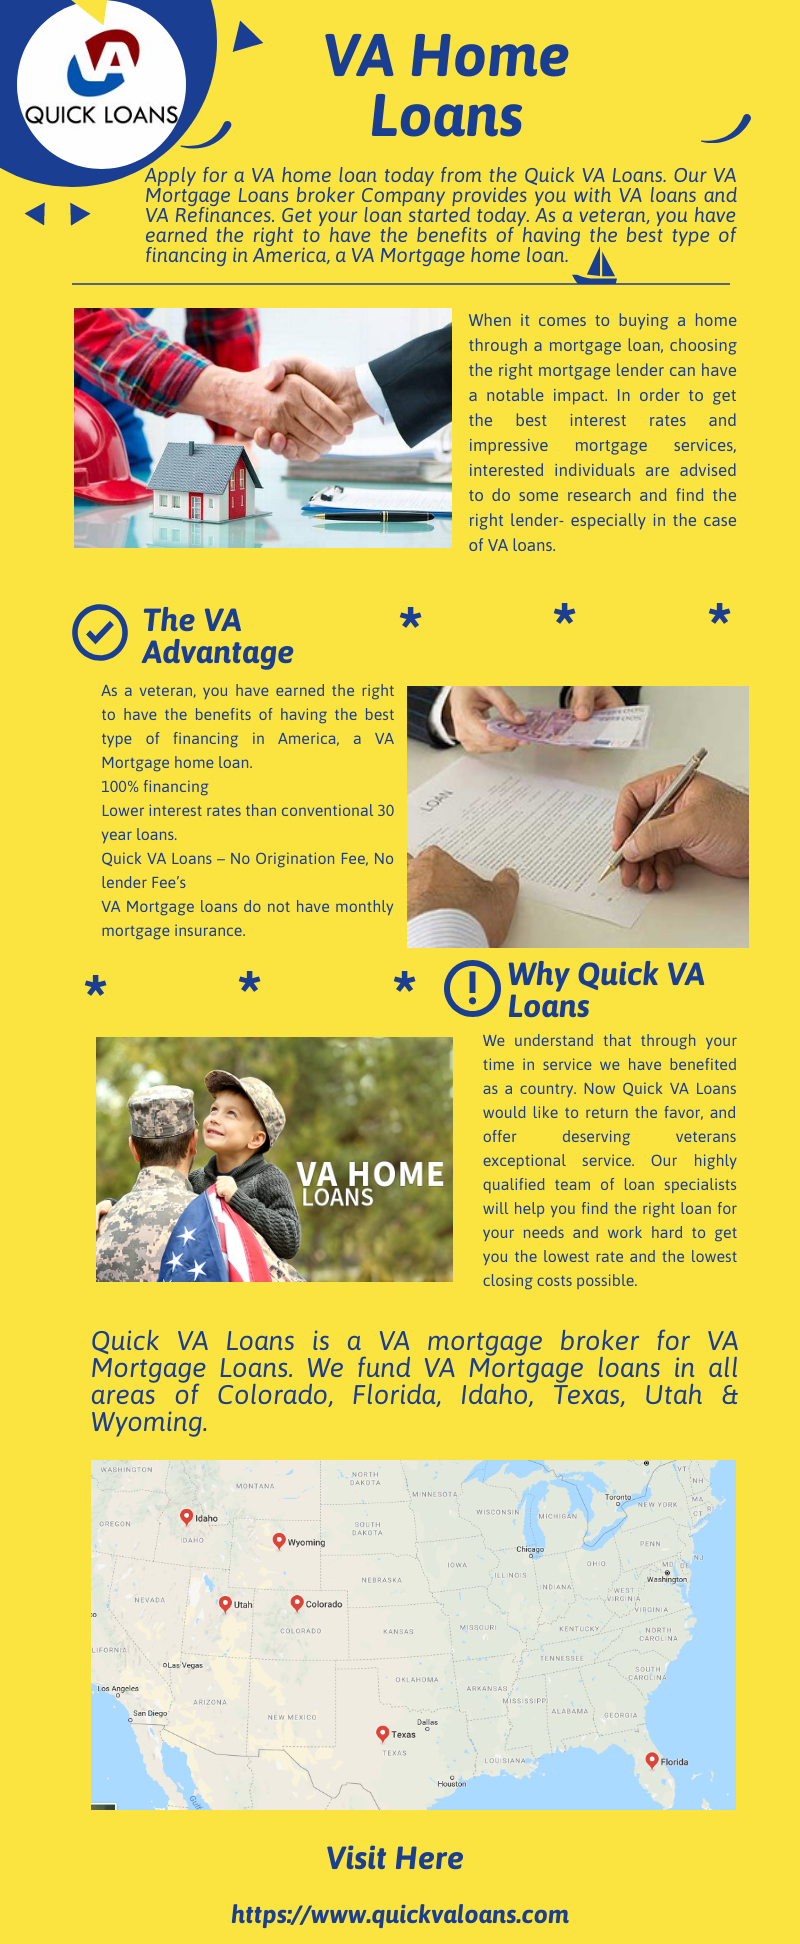 We Quick Va Loans Are An Experienced And Reputed Va Home Loan